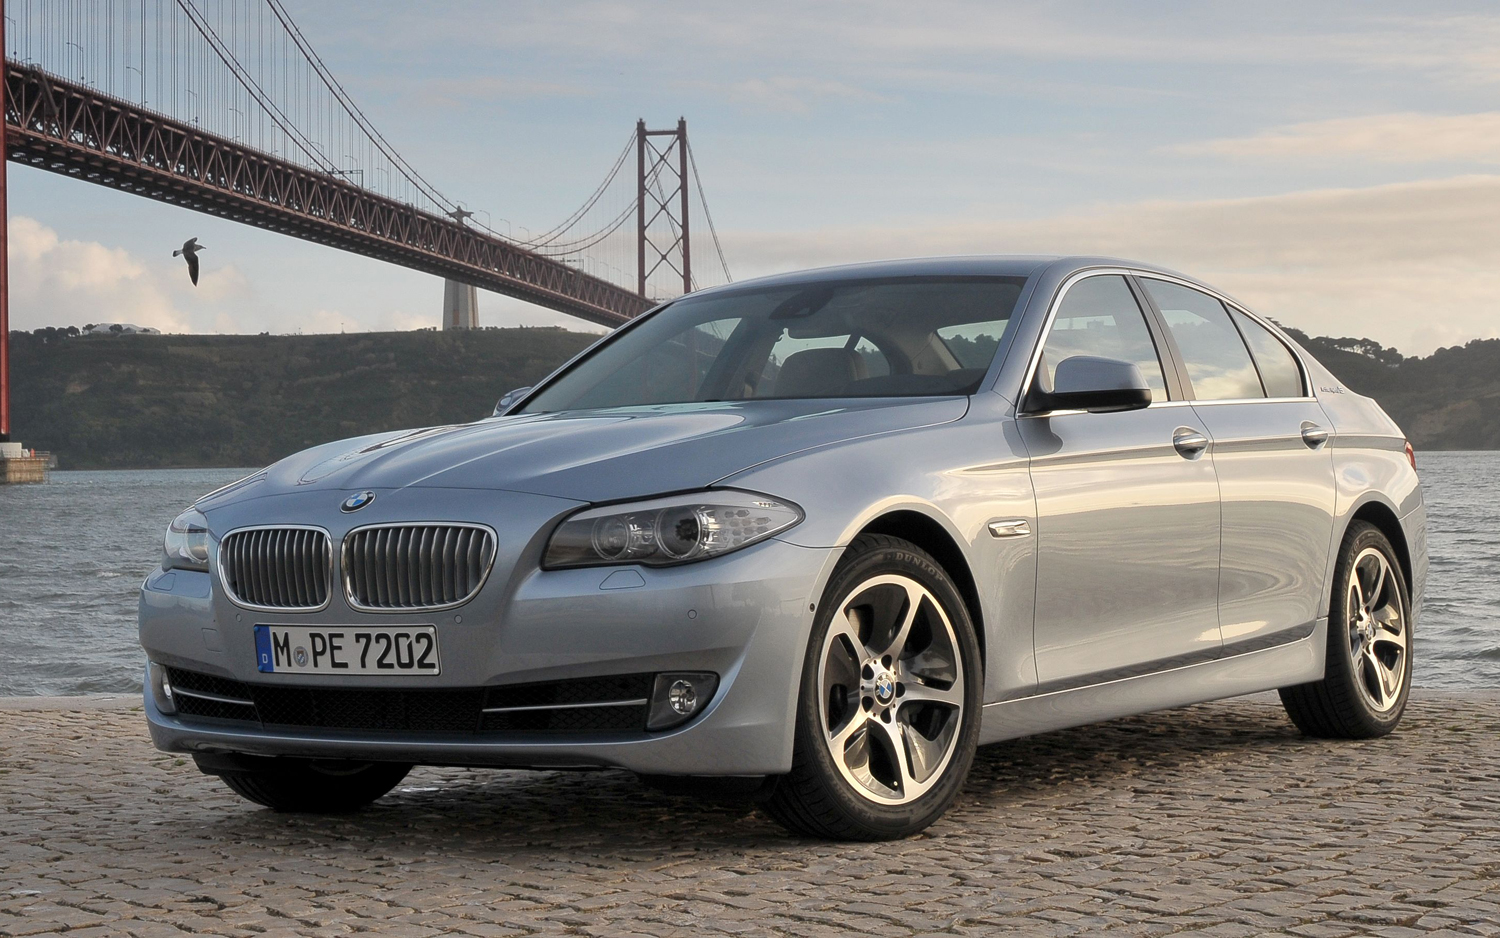 First Drive: 2012 BMW ActiveHybrid 5 - Motor Trend